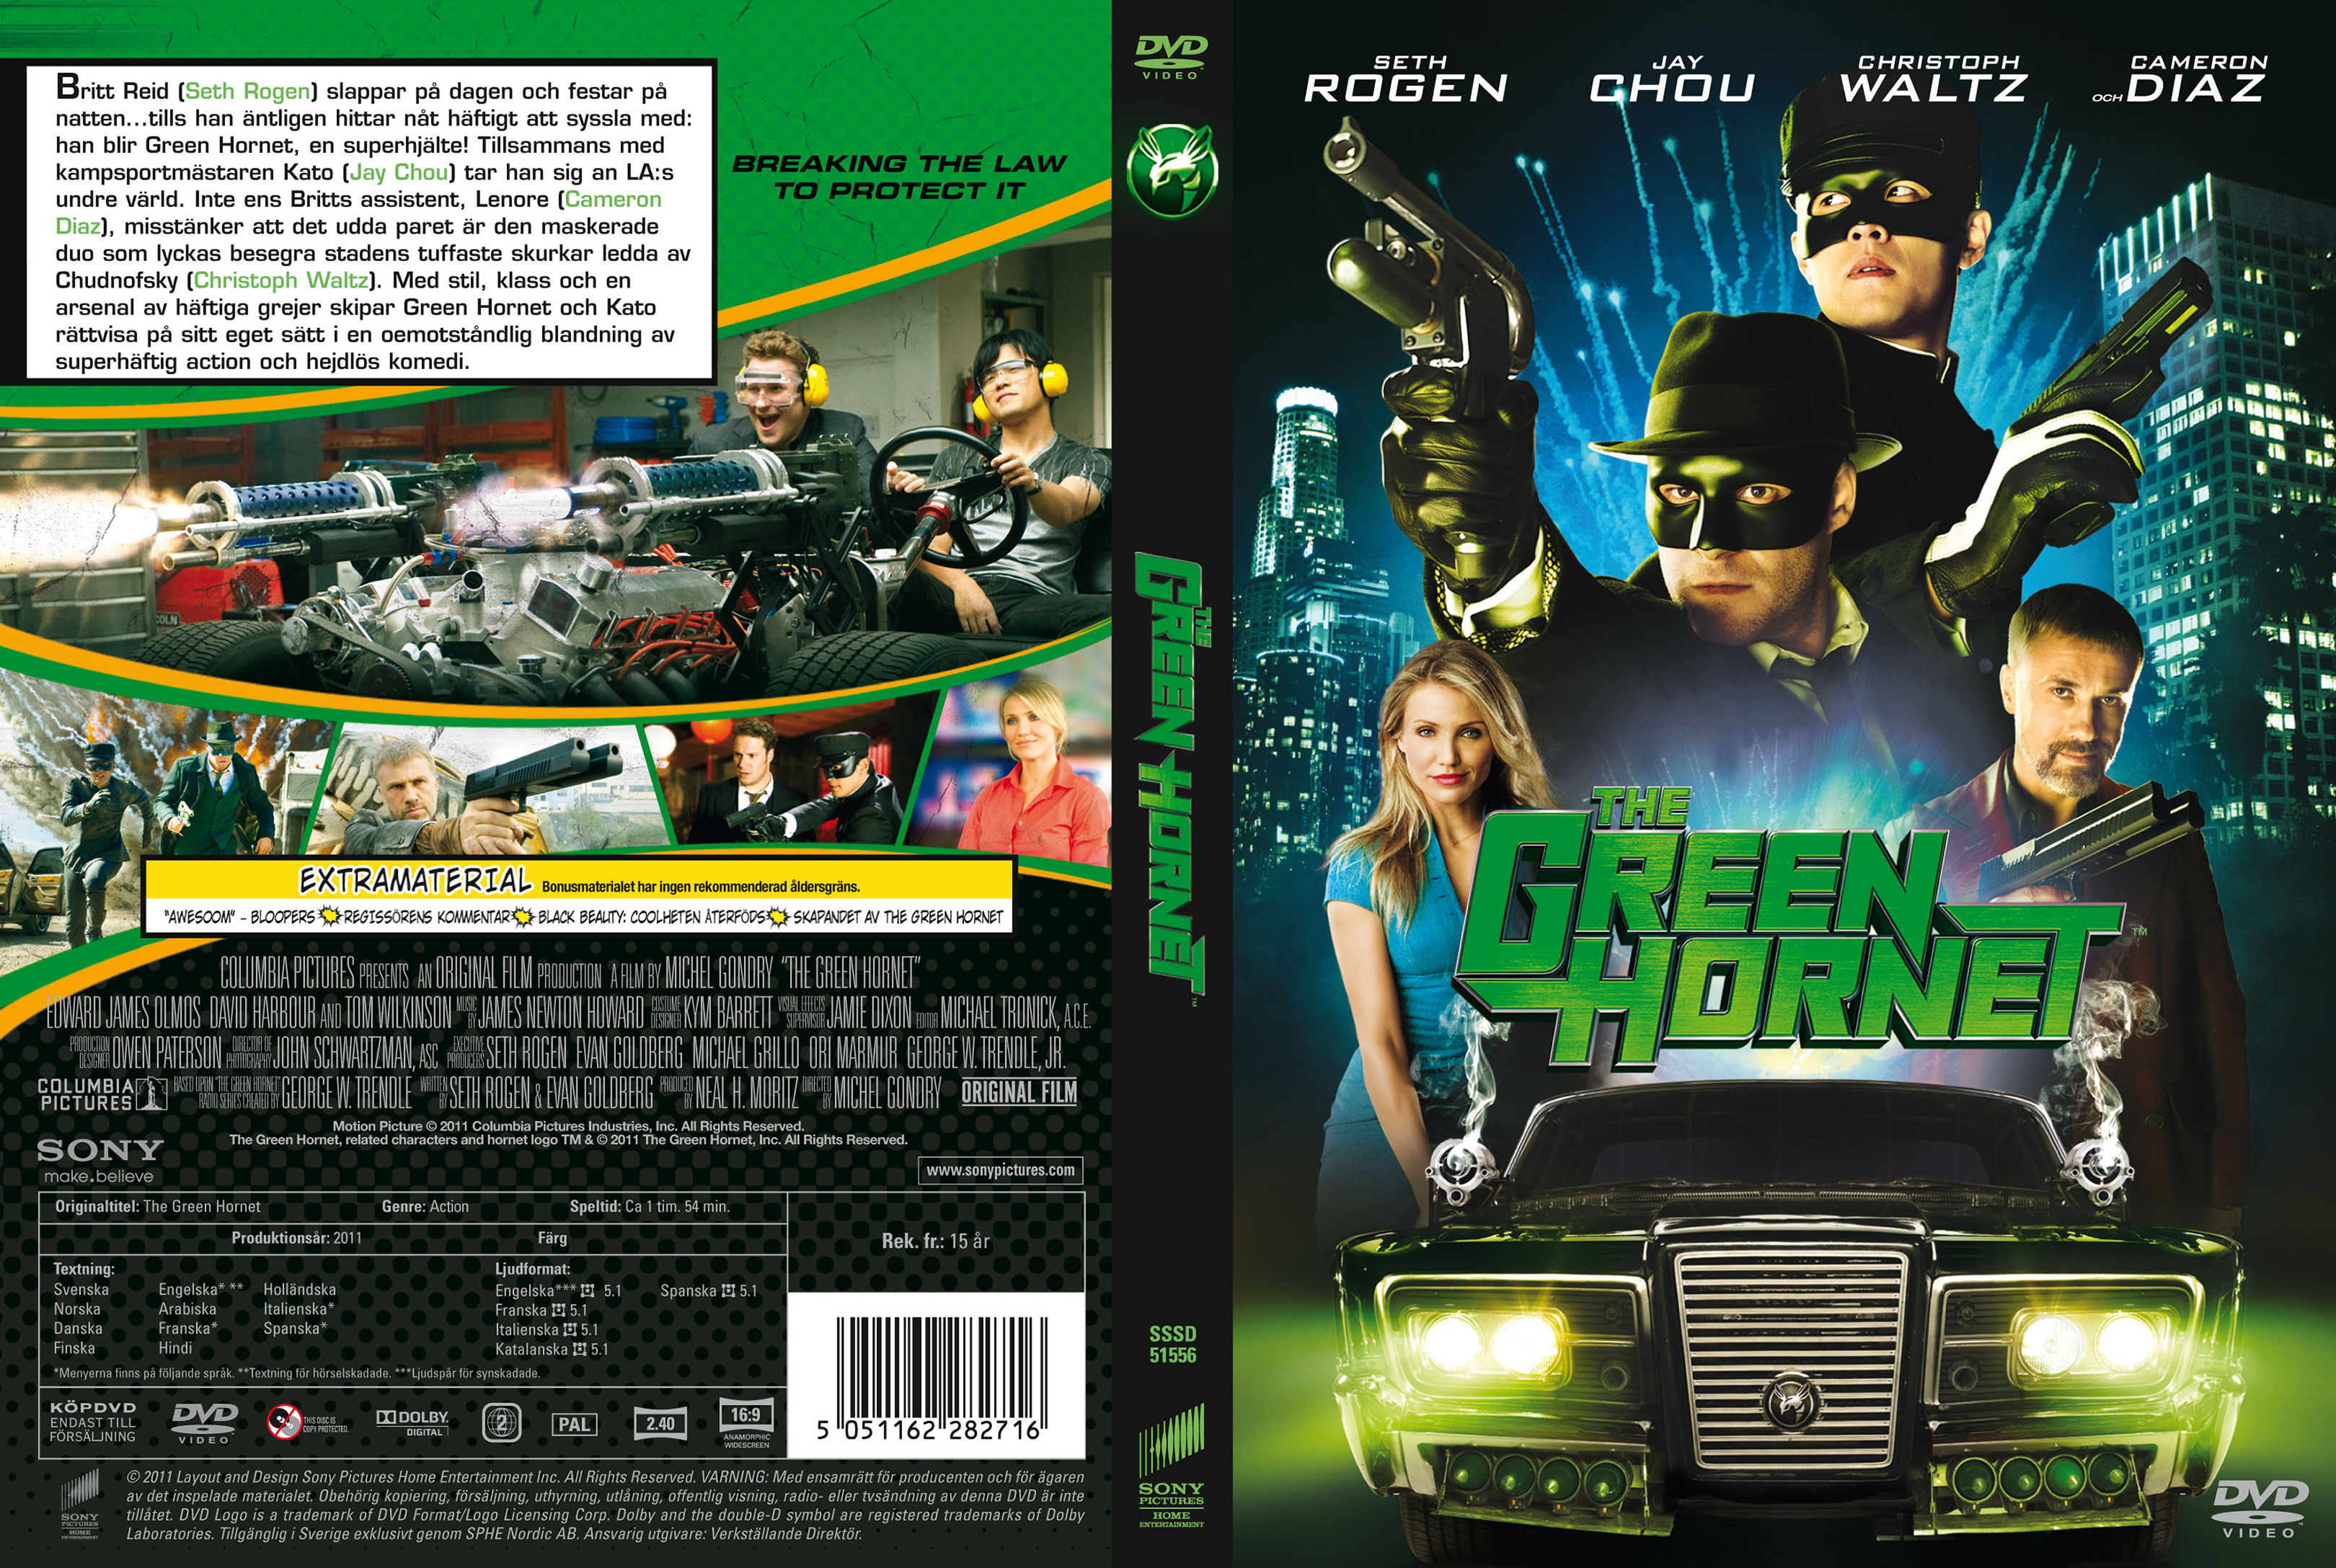 Covers Box Sk The Green Hornet 2011 High Quality Dvd Blueray Movie